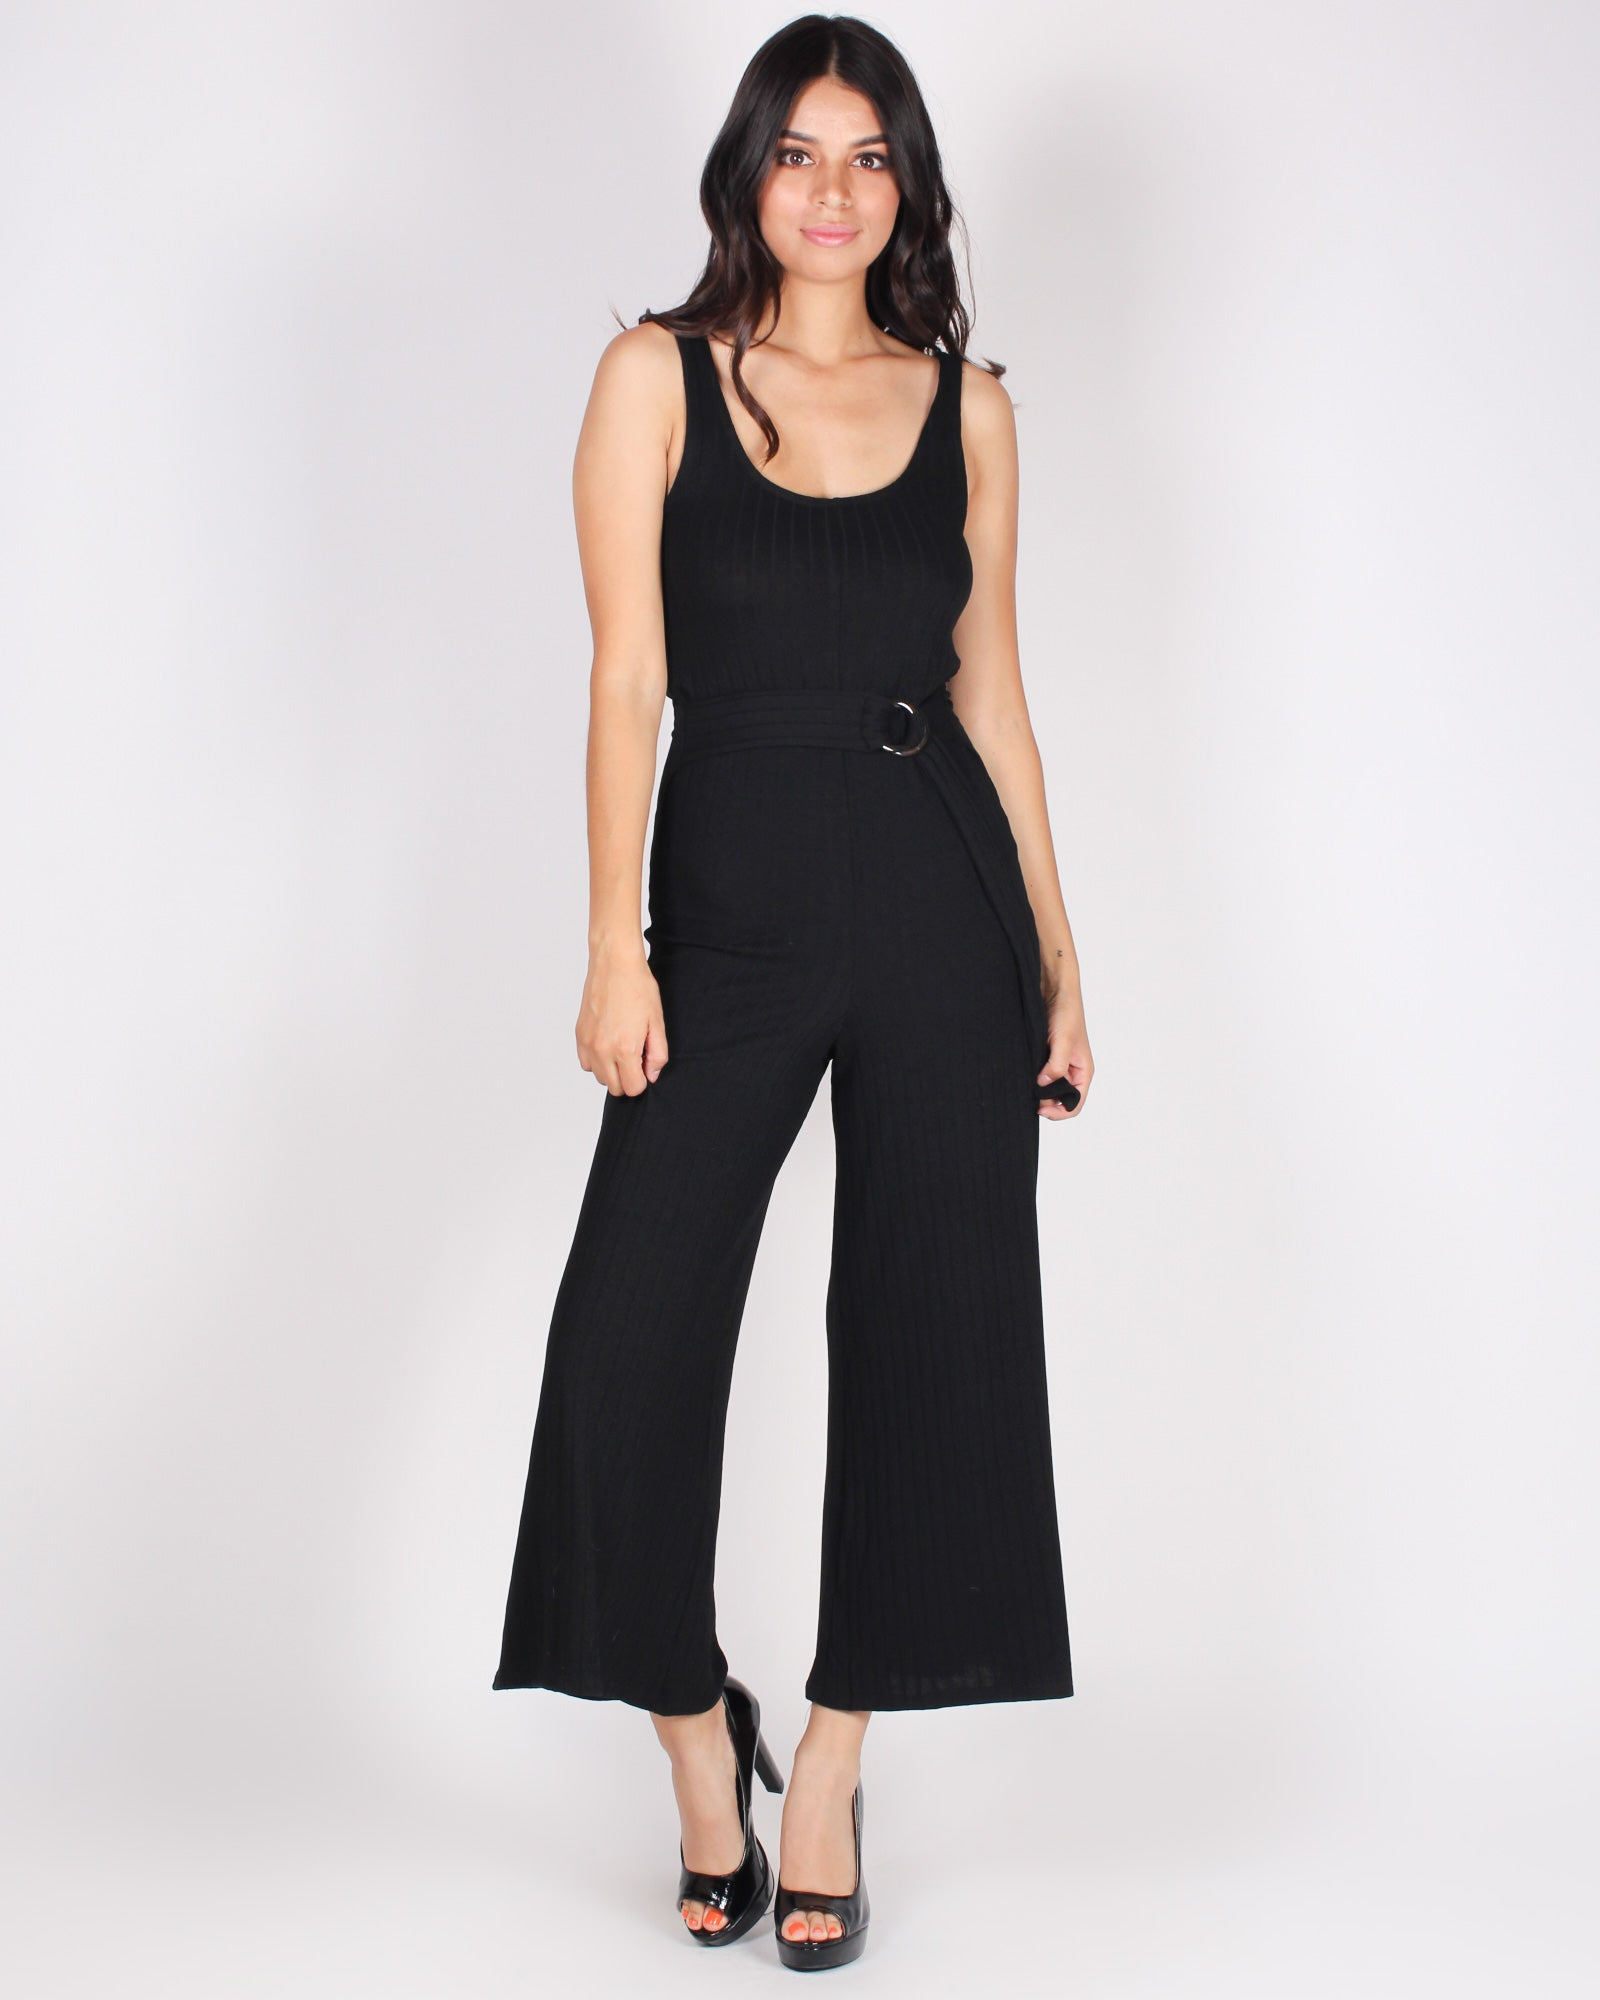 Fashion Q Shop Q Today Matters Most Jumpsuit (Black) HMP30840